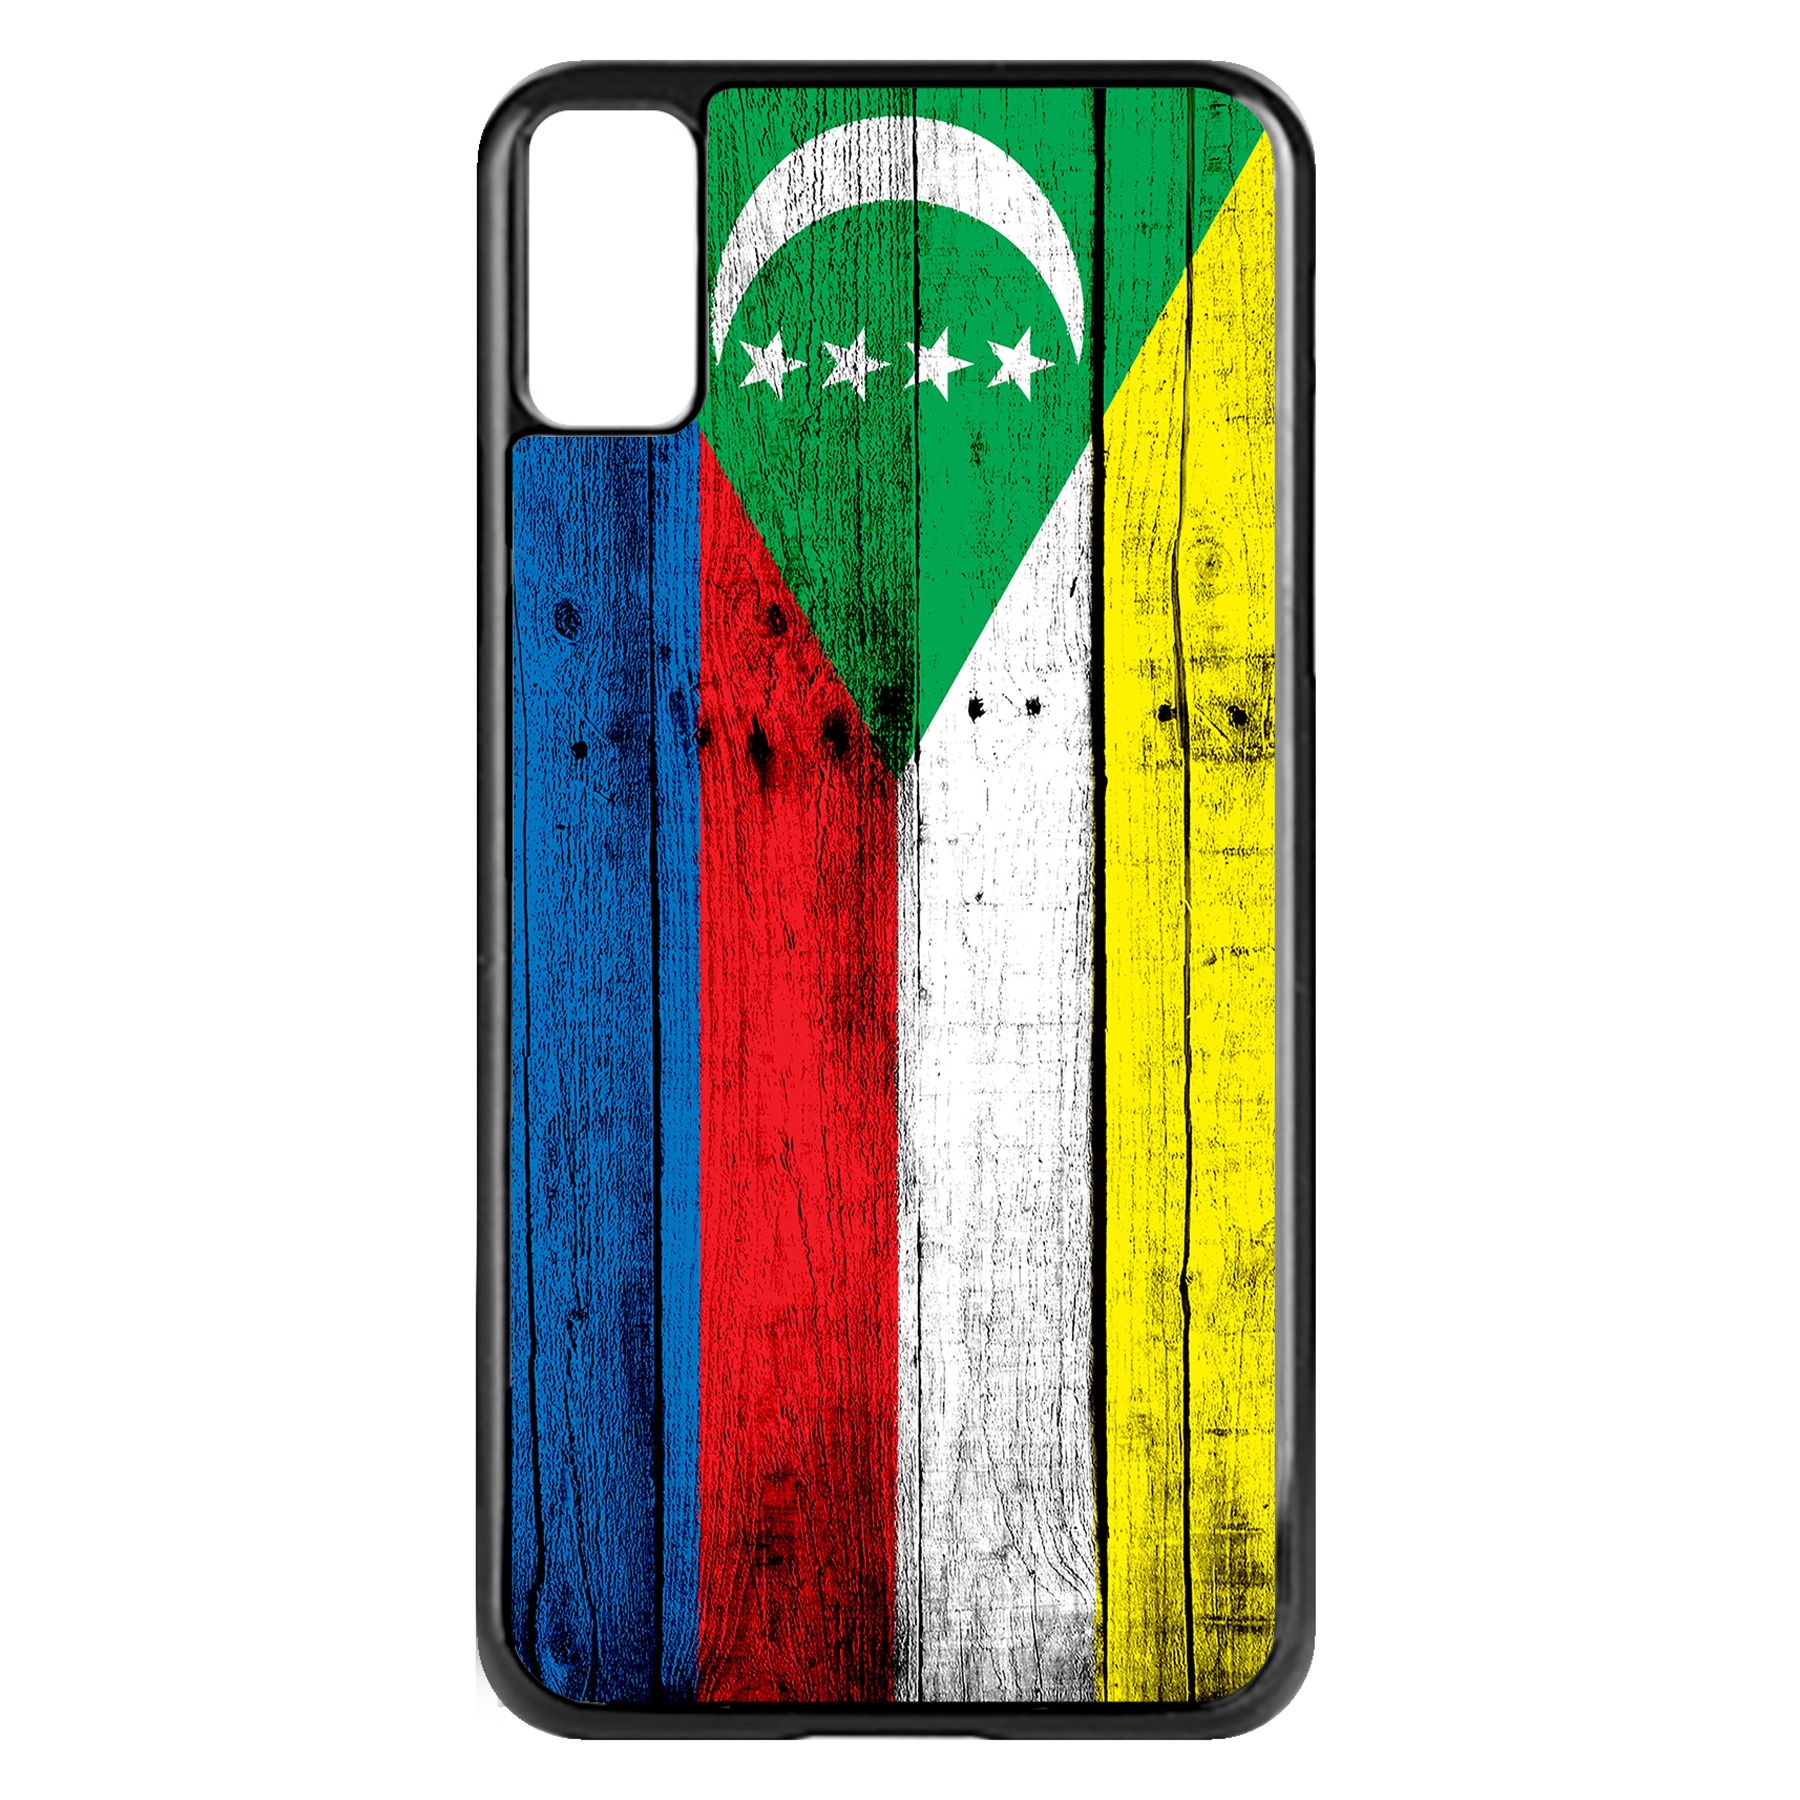 Apple-iPhone-Case-with-Flag-of-Comoros-Comorian-Many-Design-Options thumbnail 5